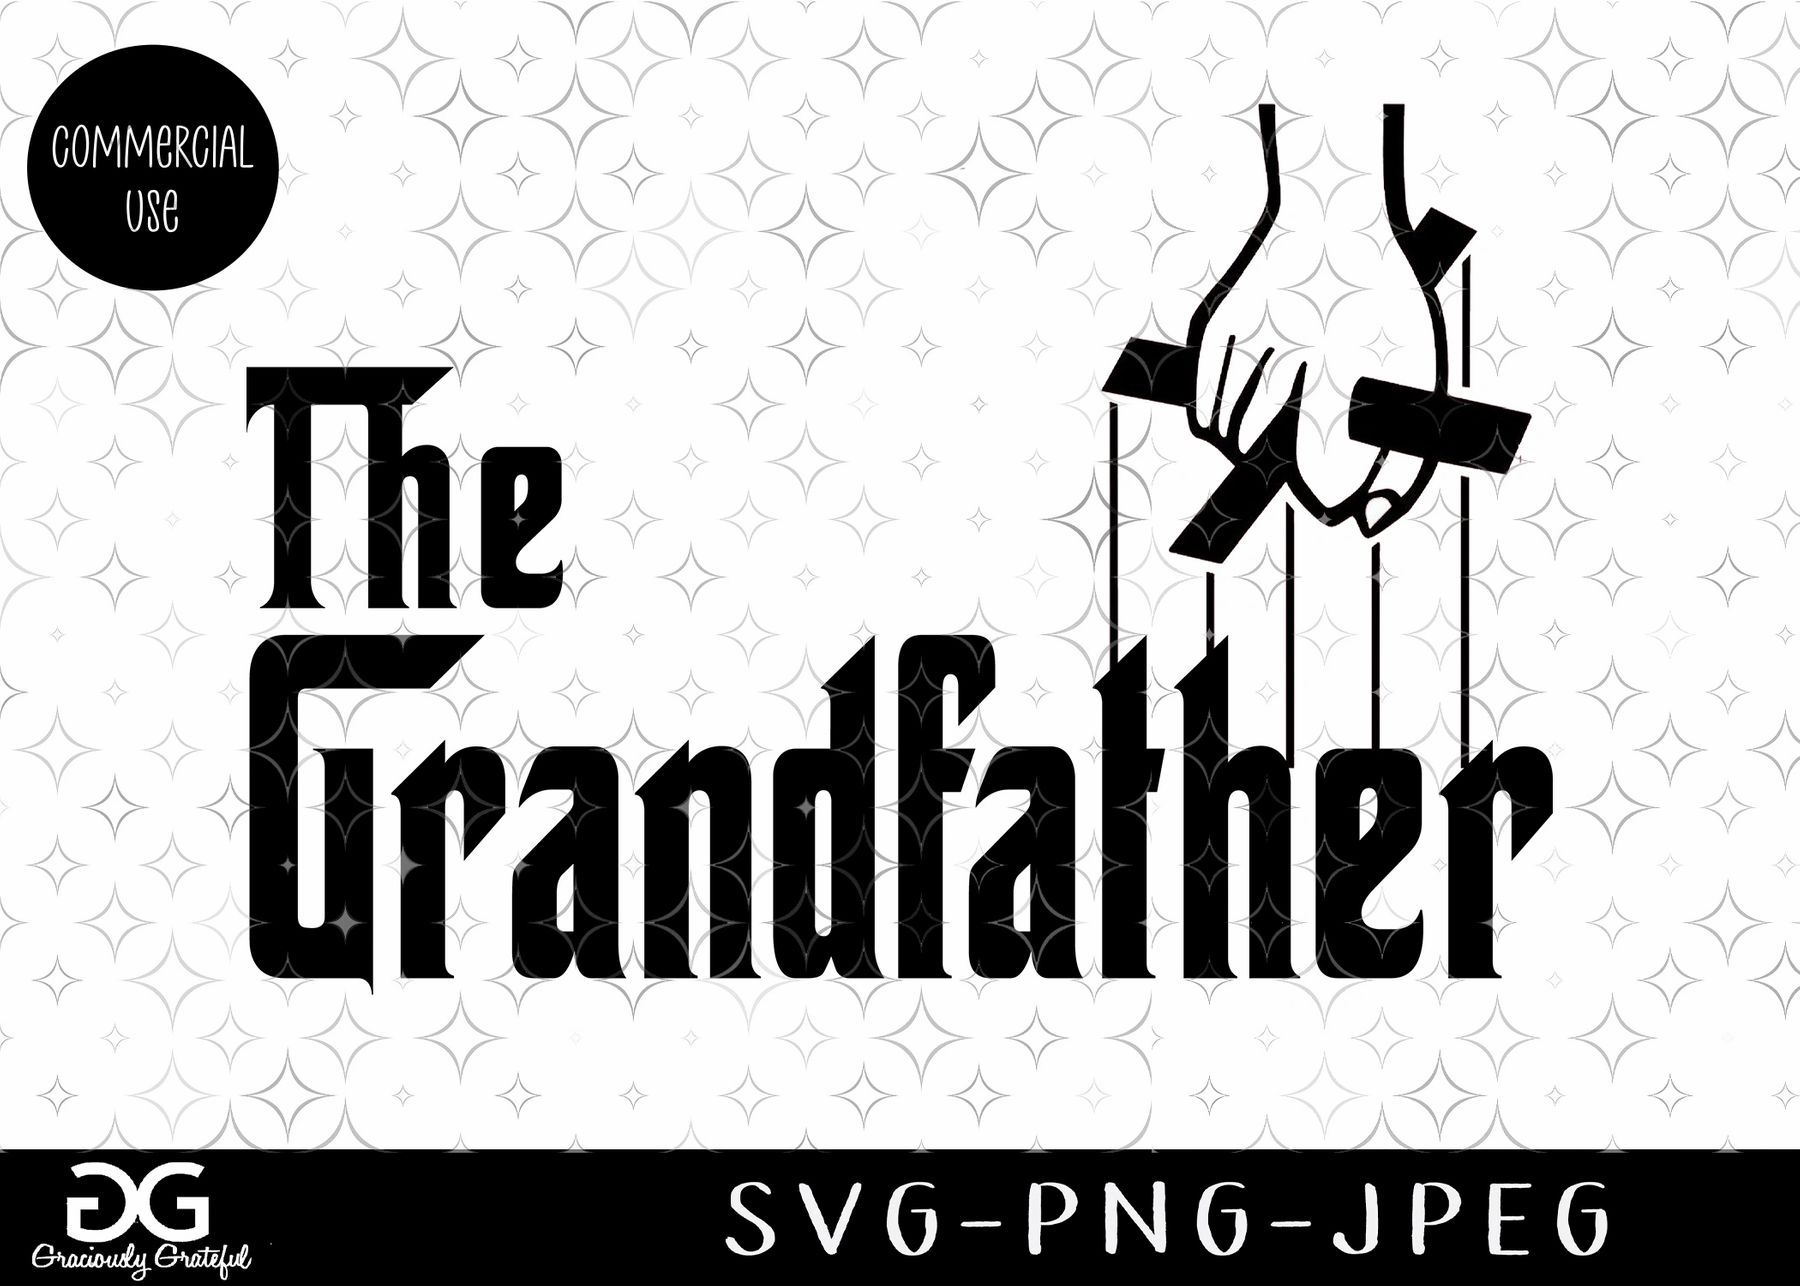 The Grandfather Png Jpeg Godfather Commercial Svg Instant Download Cricut Download Silhouette Download The Godfather Cricut Instant Download